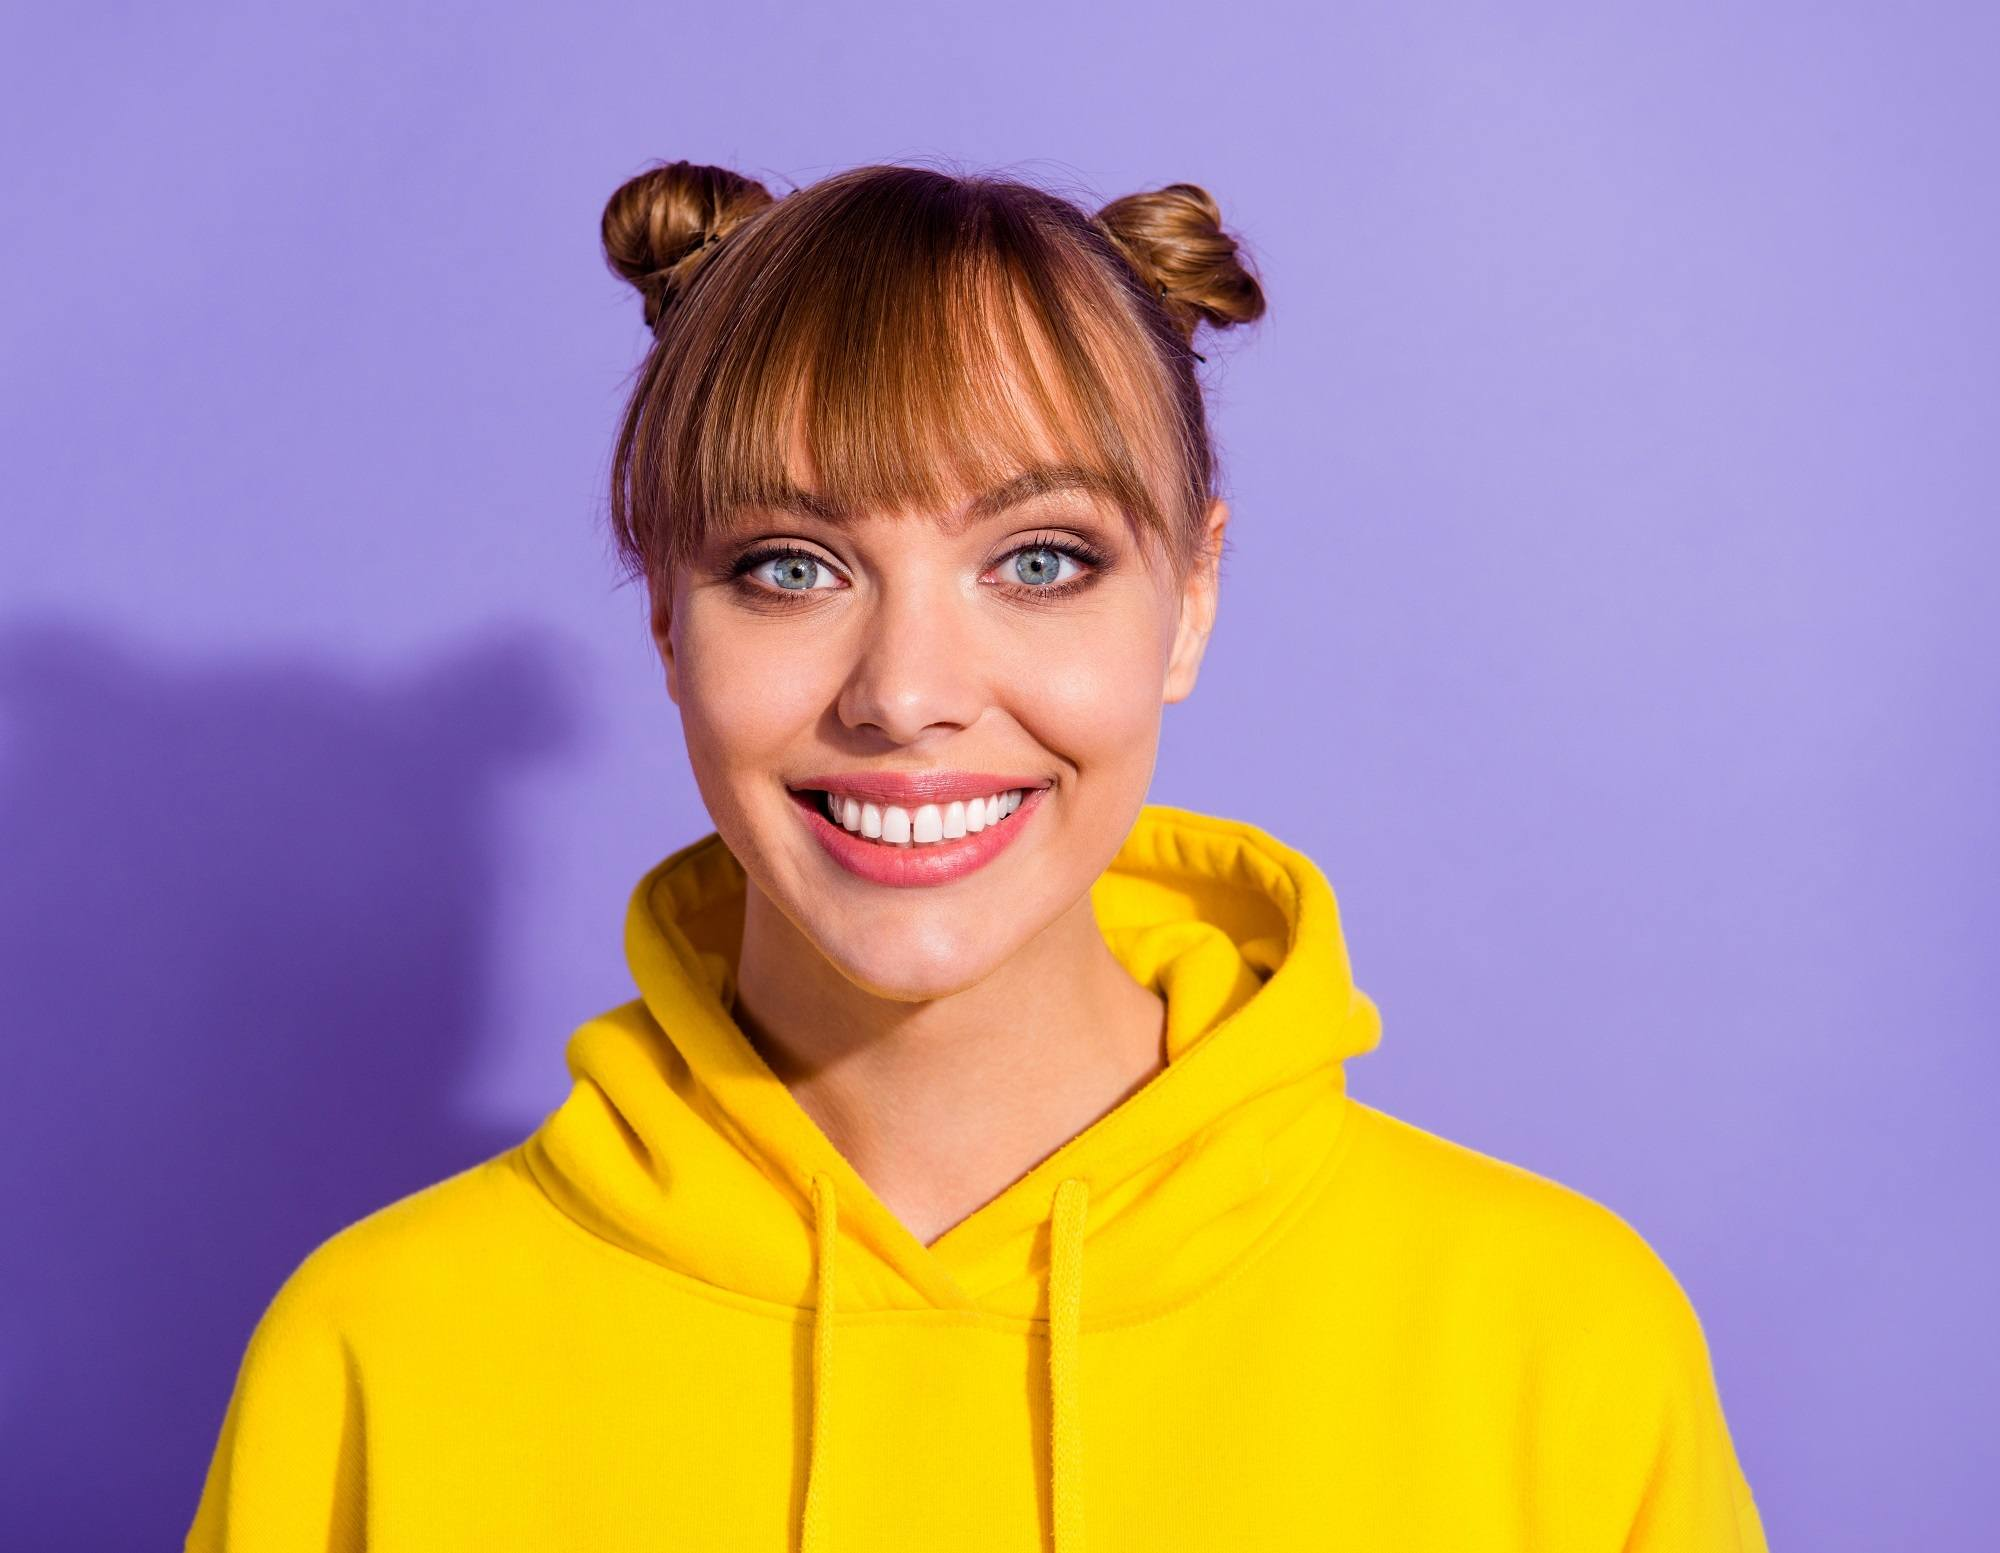 Hair trends to try in 2019: Closeup shot of a woman with blonde hair in double buns wearing a yellow jacket